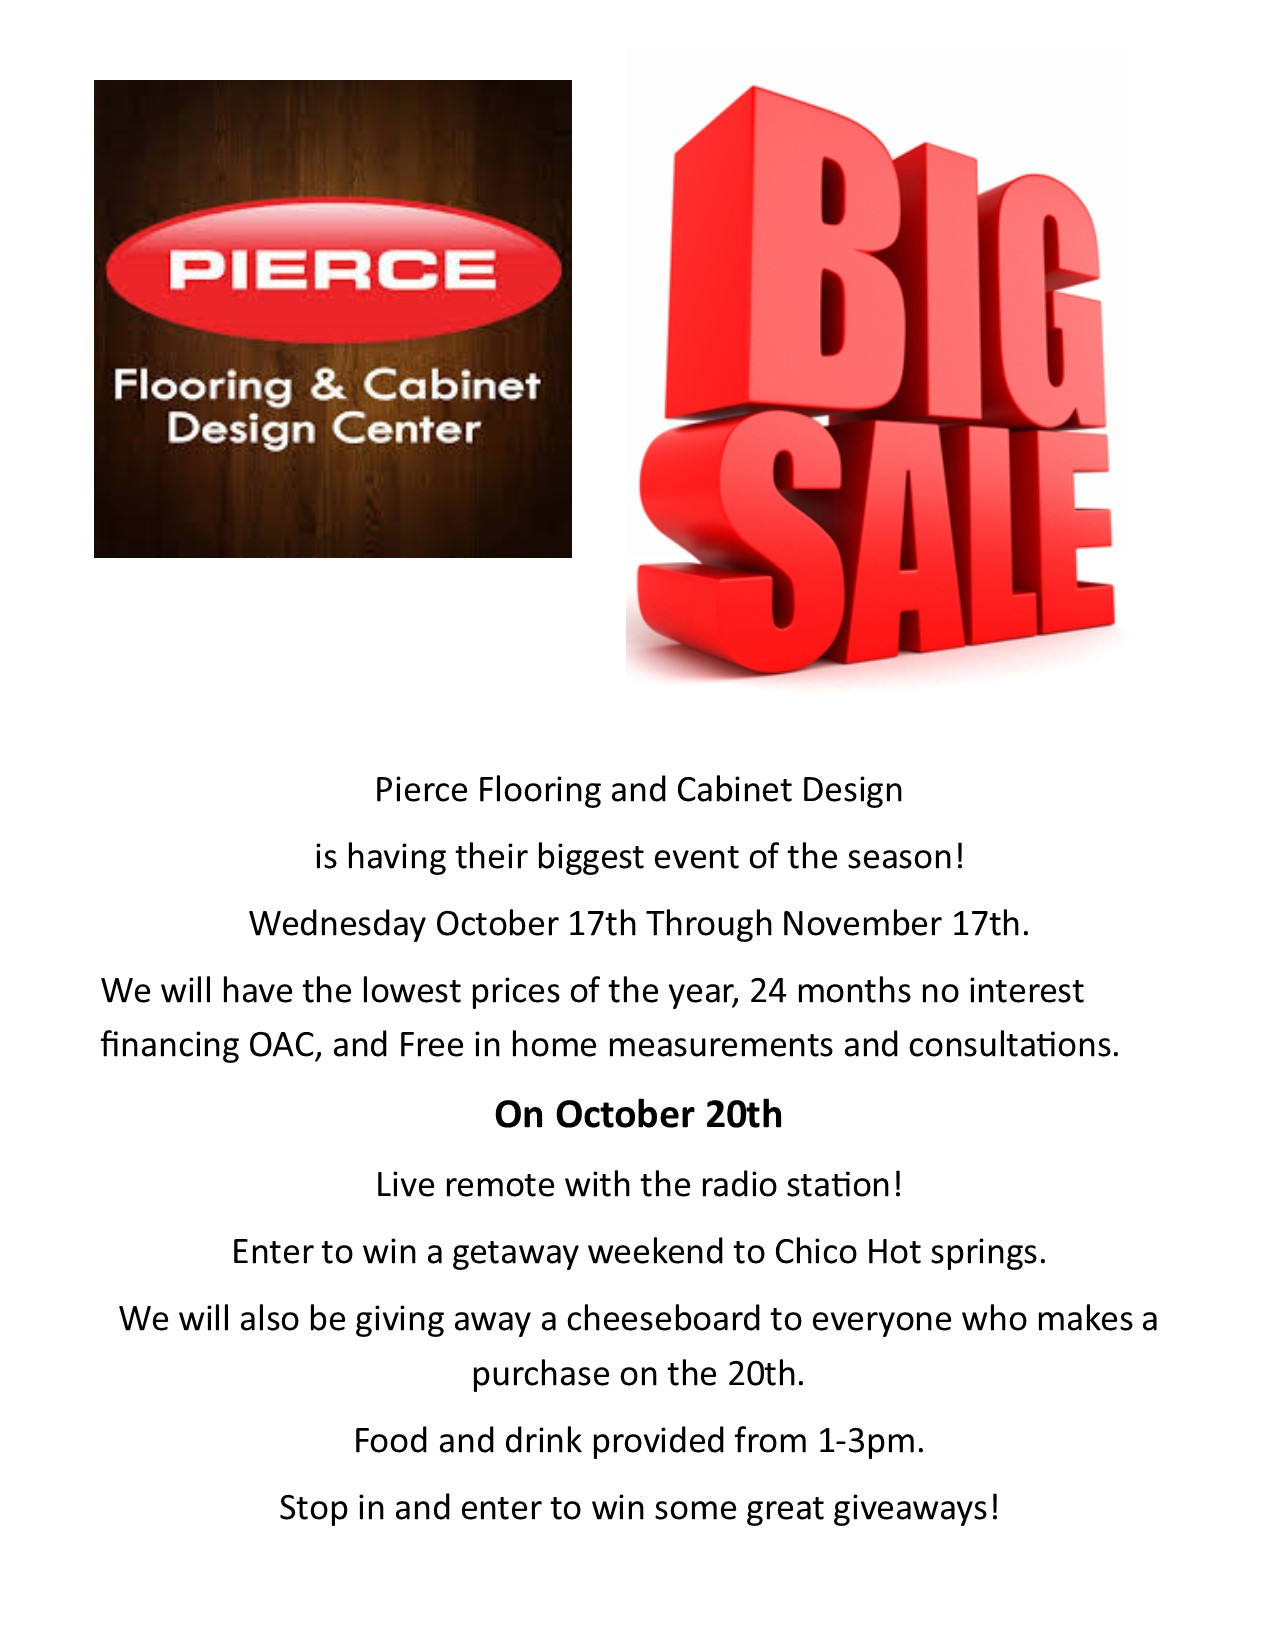 Pierce Carpet Mill Outlet Flooring Design Gest Event Of The Season Hot Deal